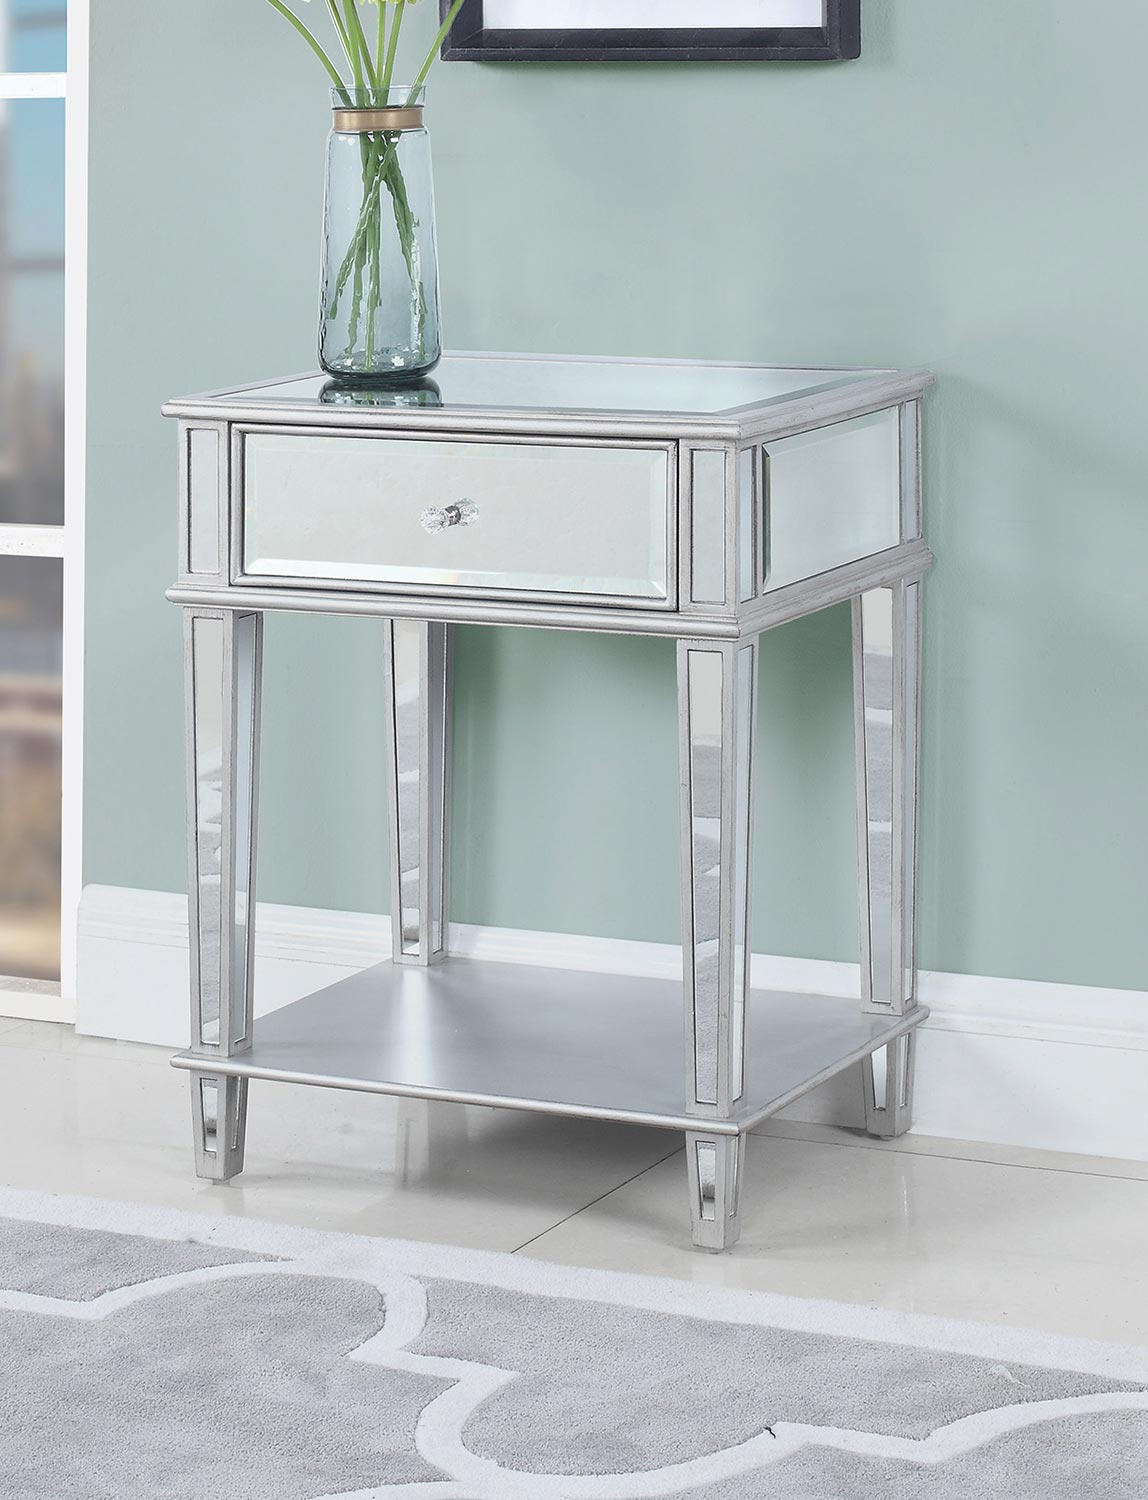 Coaster 904014 Accent Table - Clear Mirrror